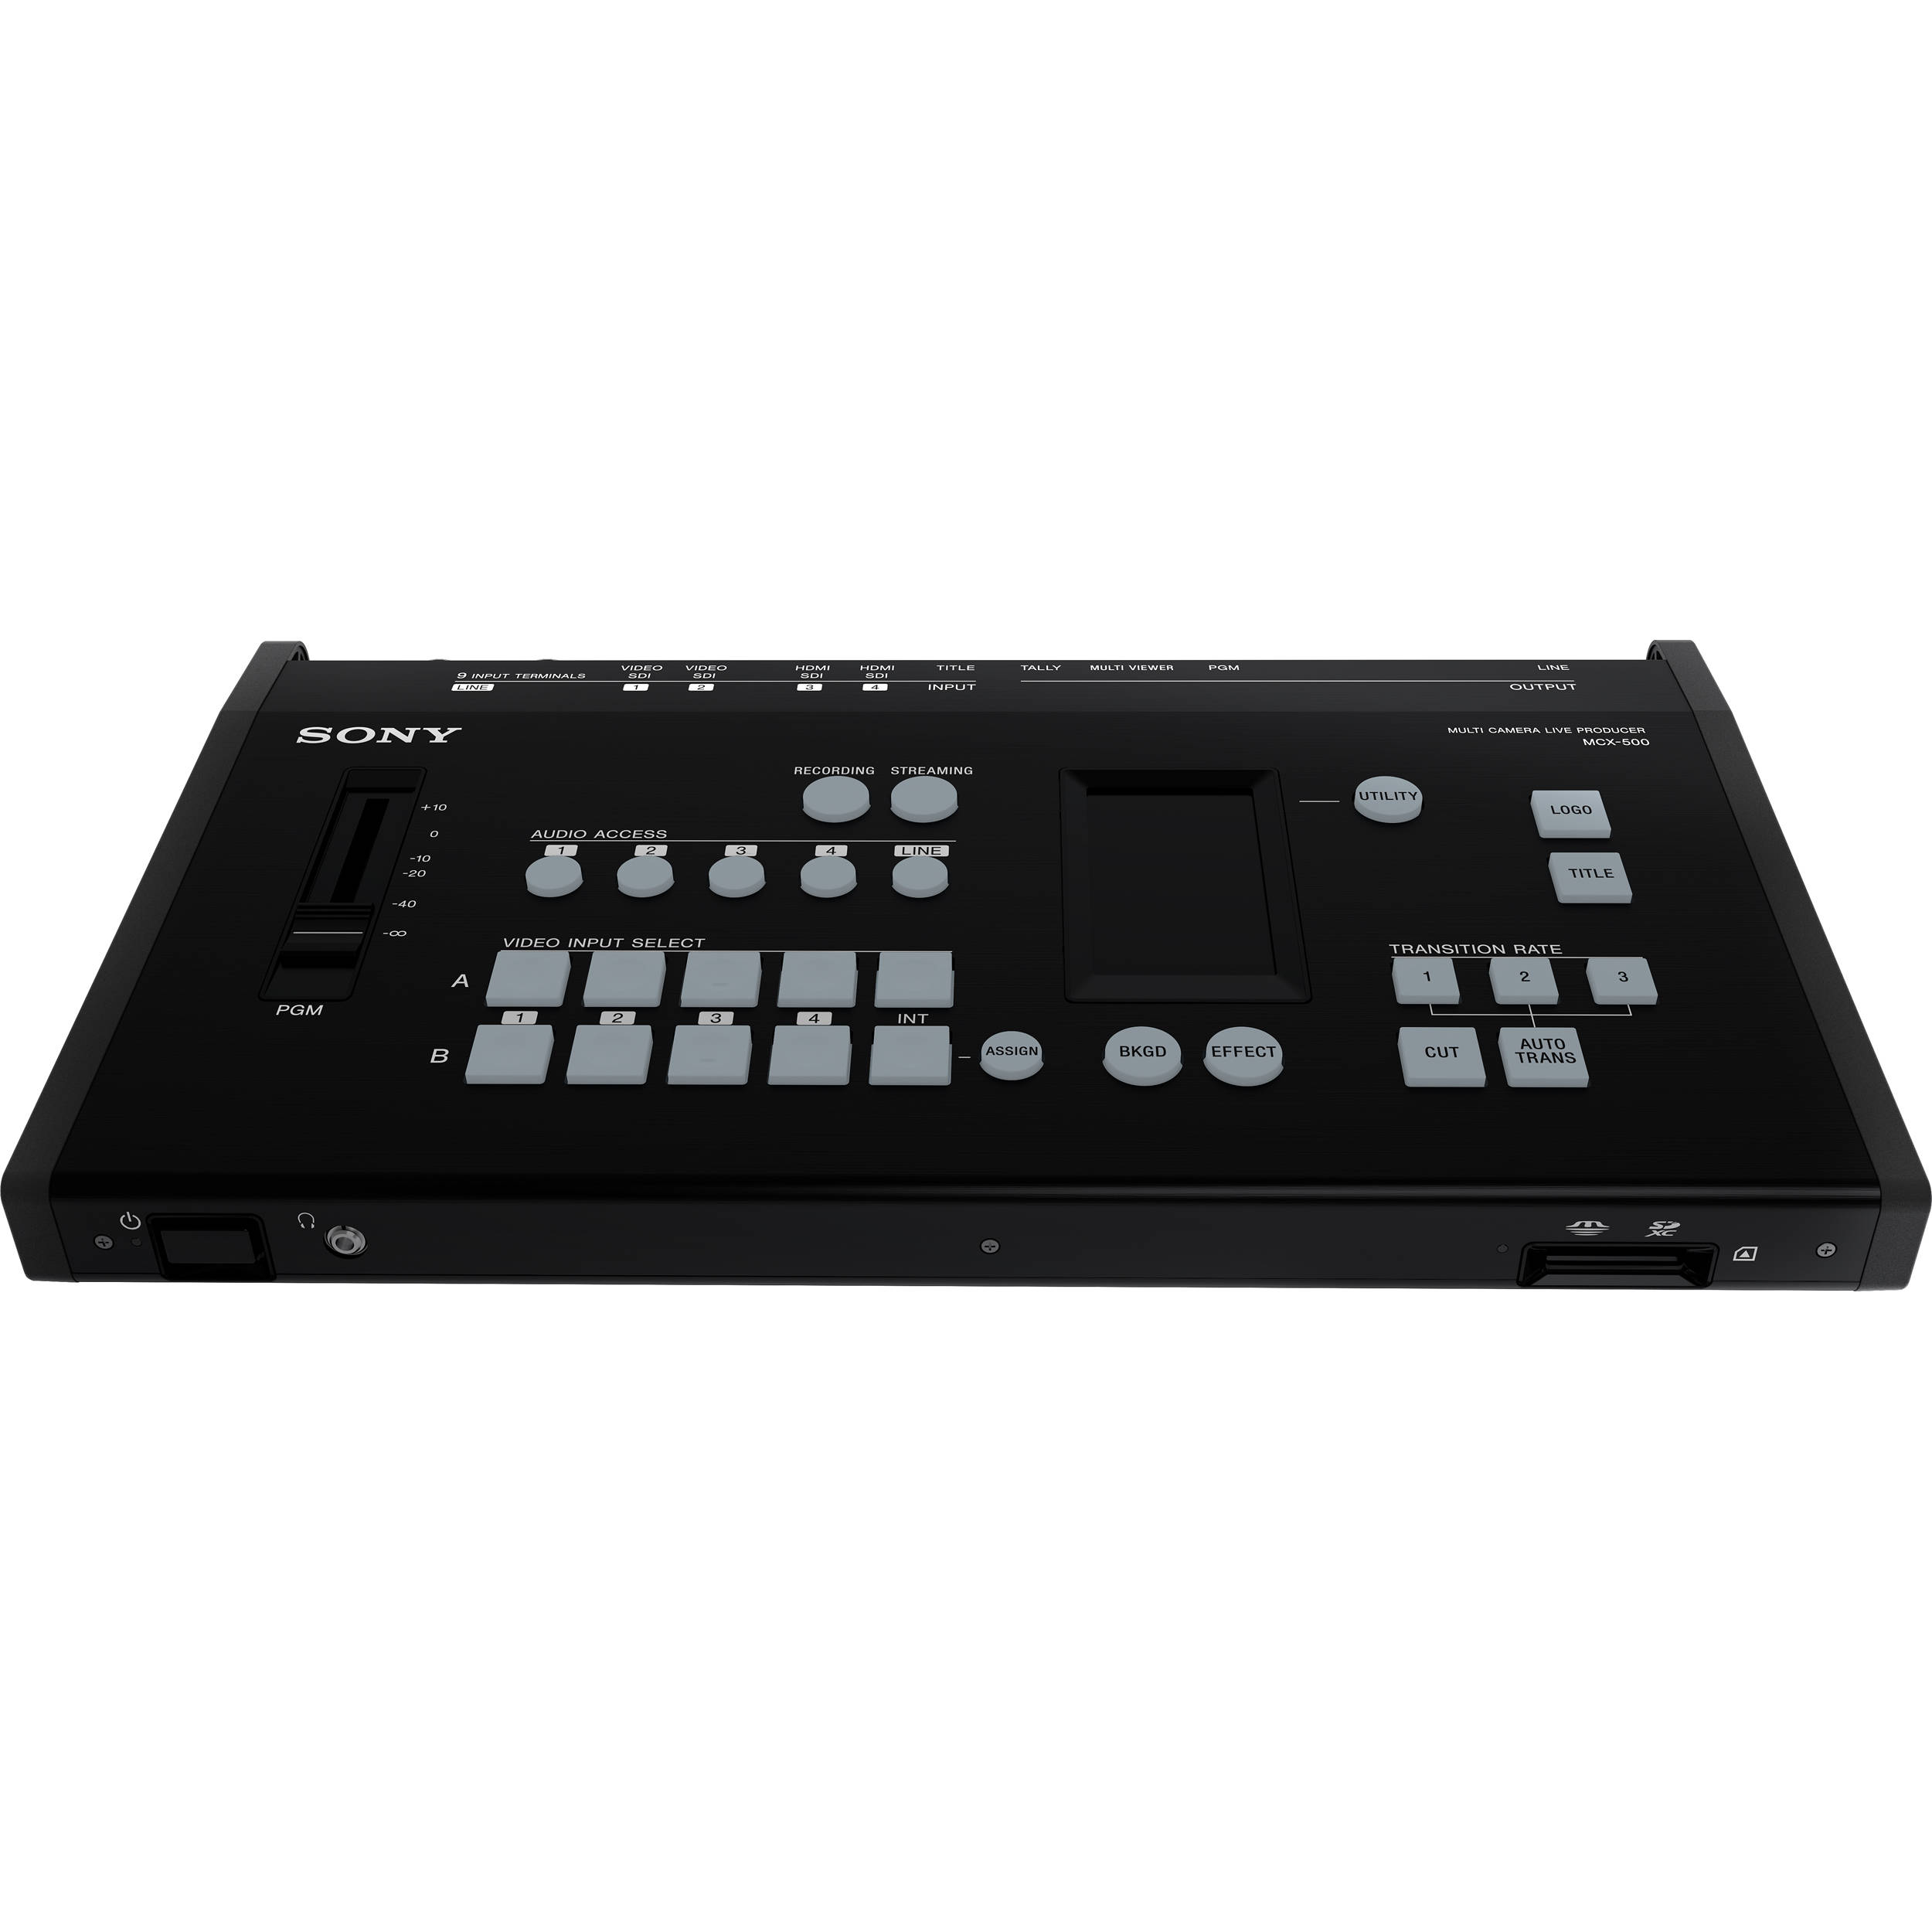 Sony Mcx 500 Mixer Video Integrated For Streaming